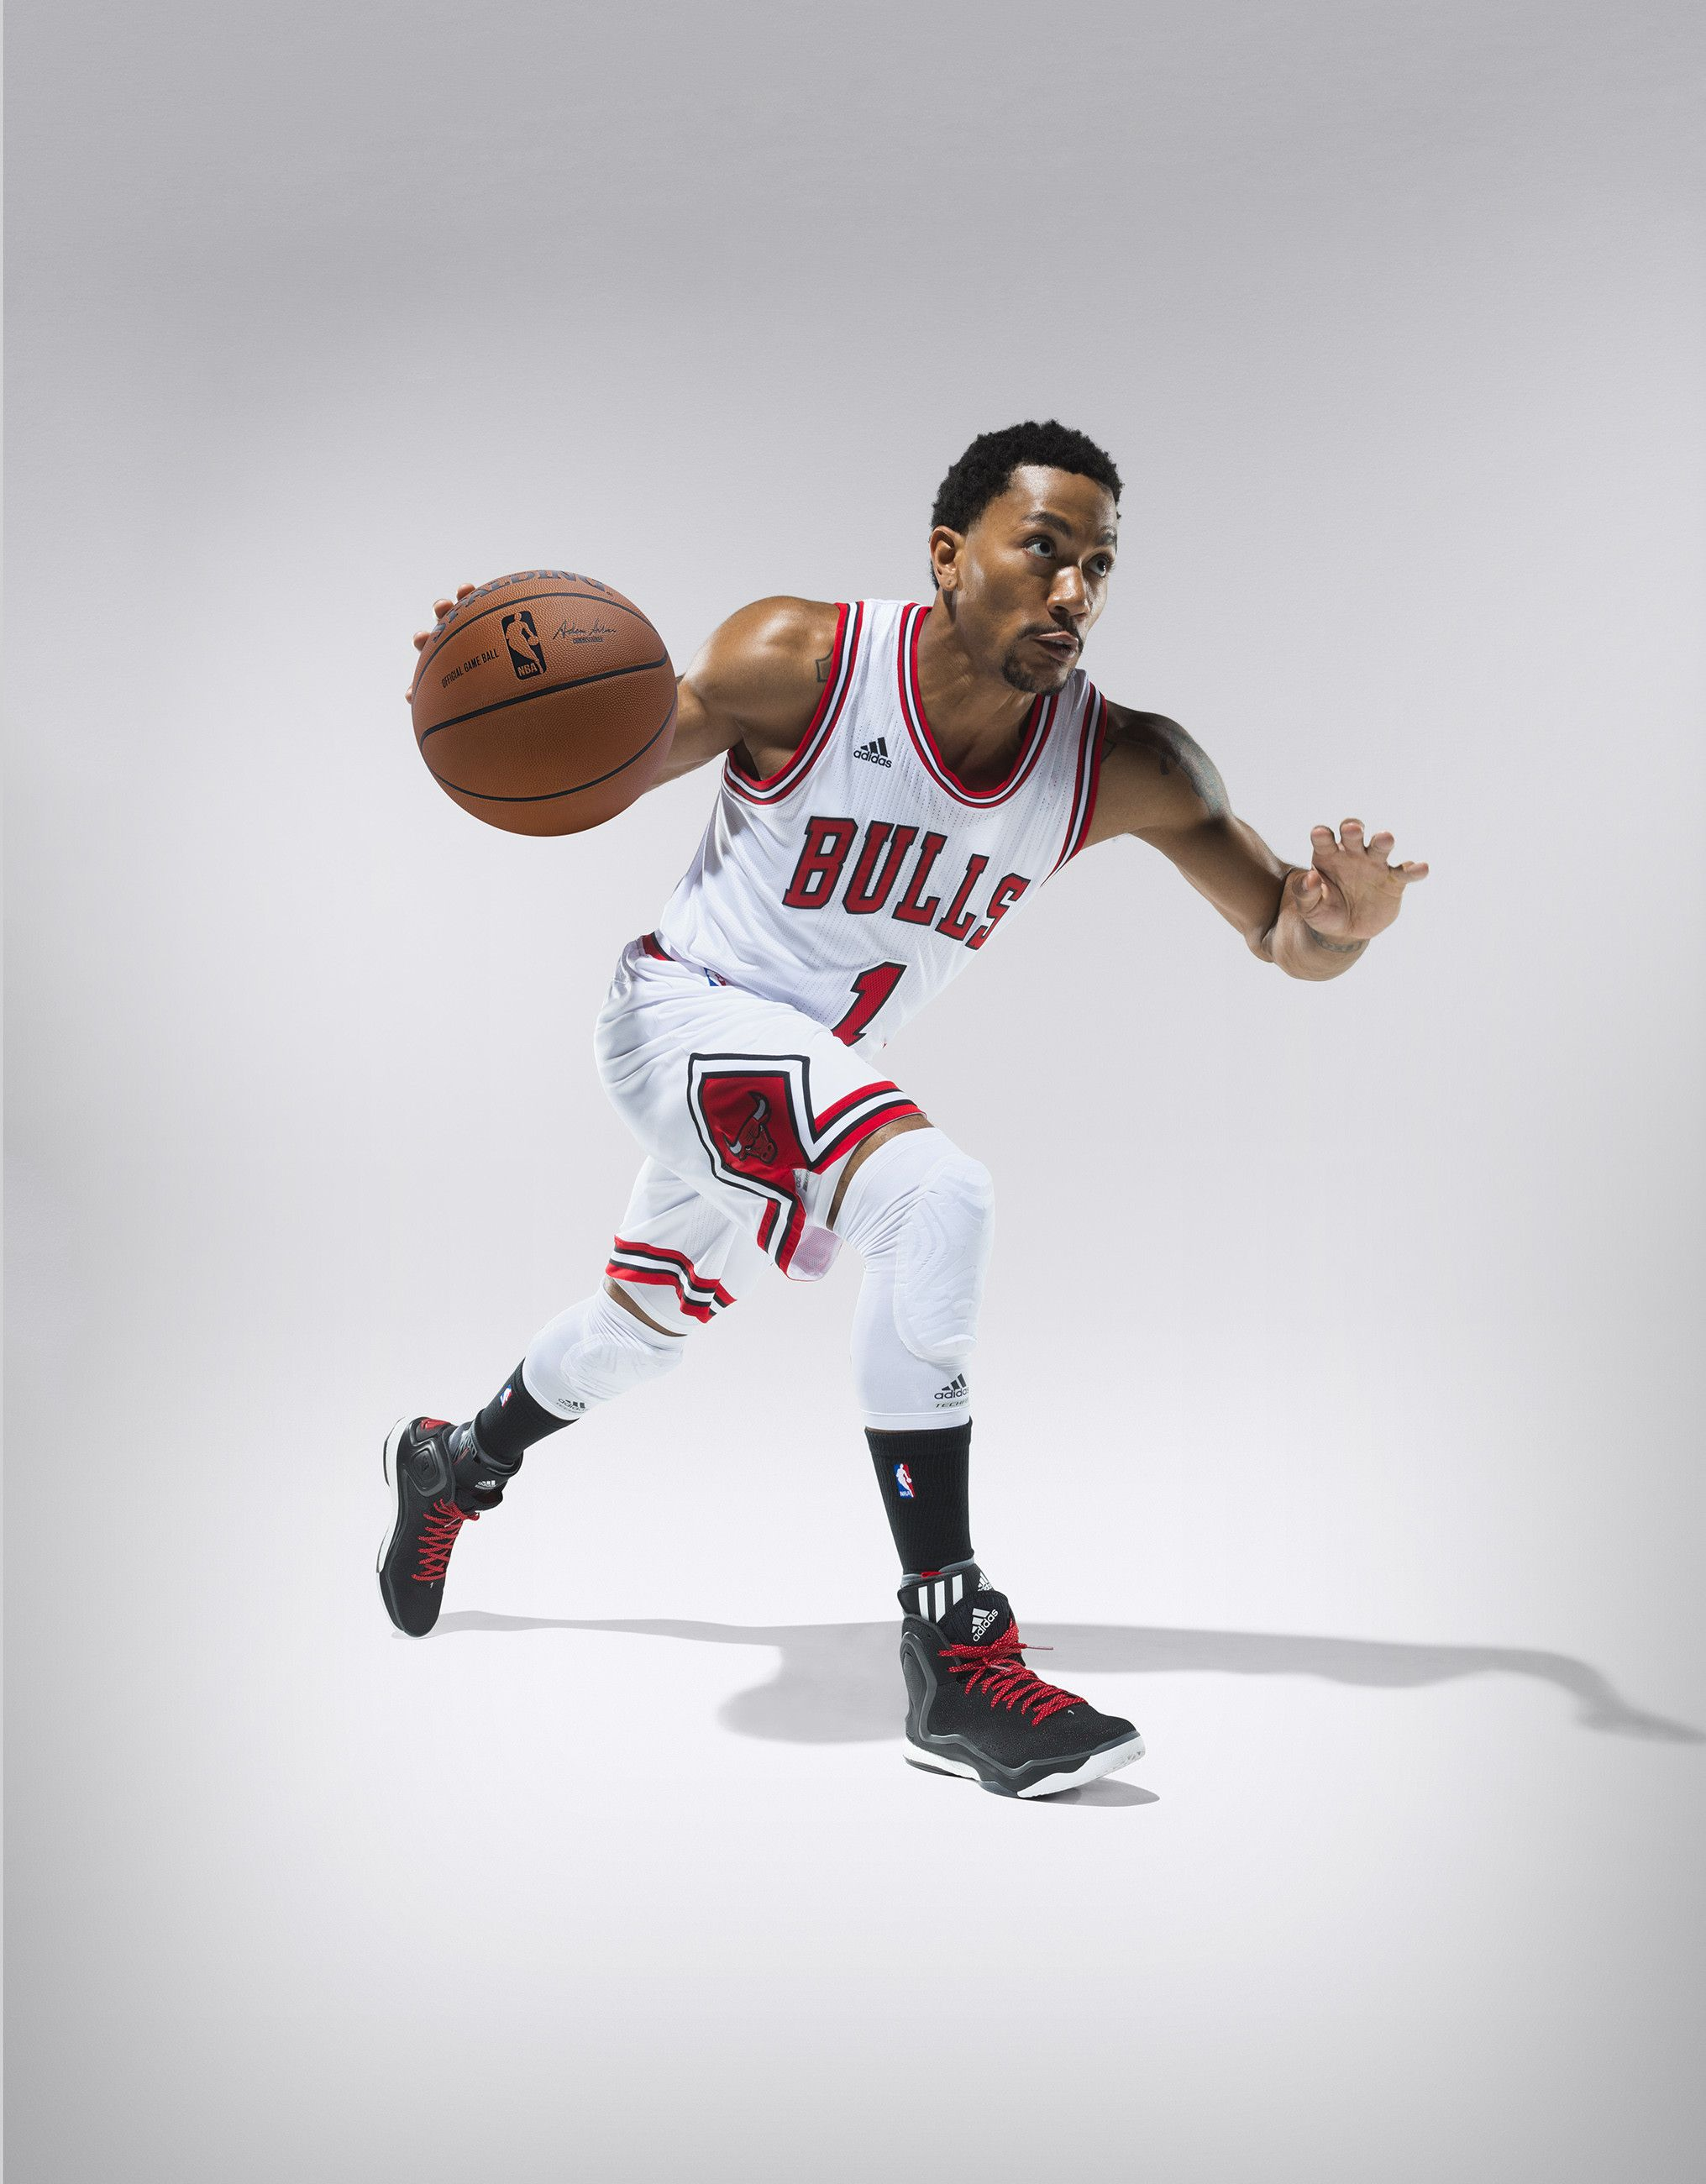 Derrick rose hd wallpapers 4 derrick rose hd wallpapers - Derrick rose cavs wallpaper ...